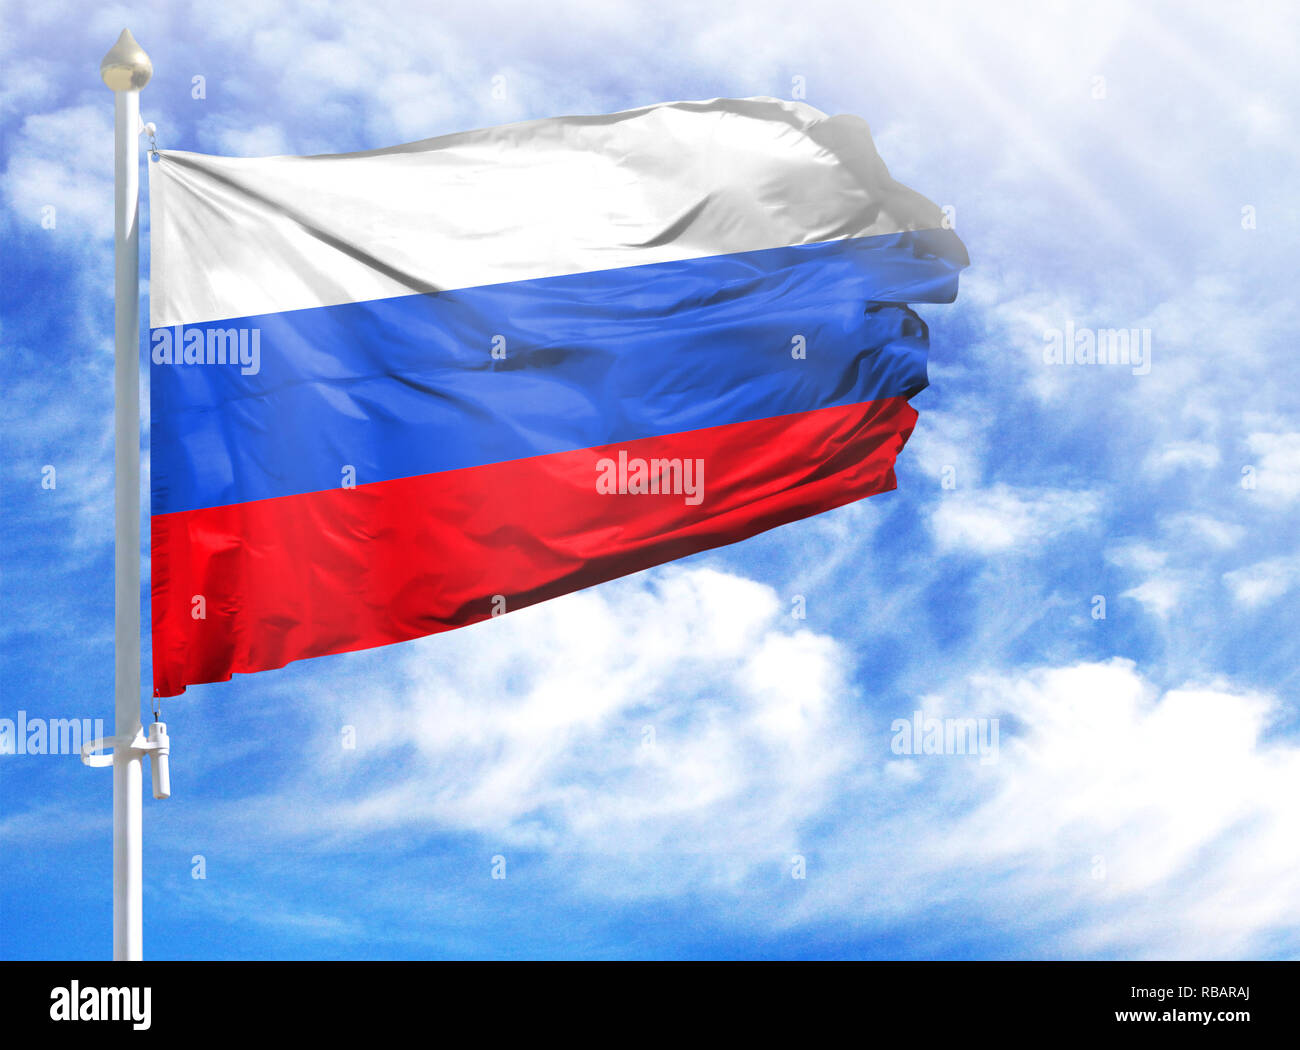 National flag of Russia on a flagpole in front of blue sky. - Stock Image